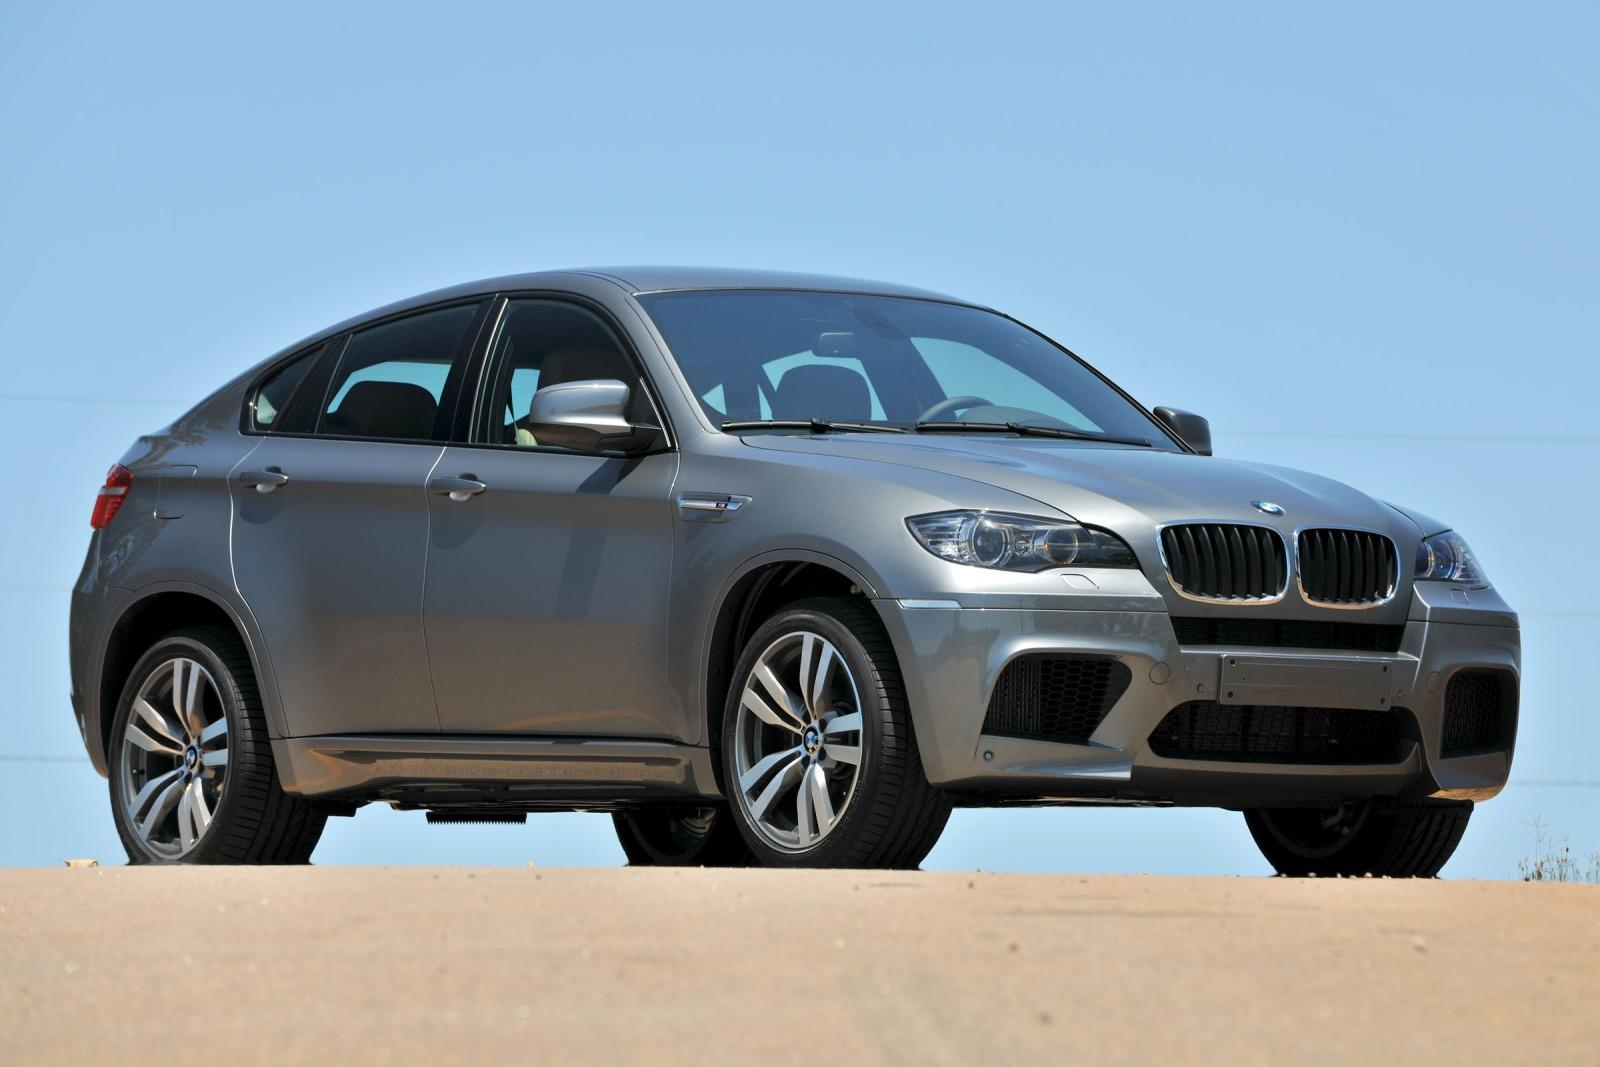 2012 bmw x6 m information and photos zombiedrive. Black Bedroom Furniture Sets. Home Design Ideas